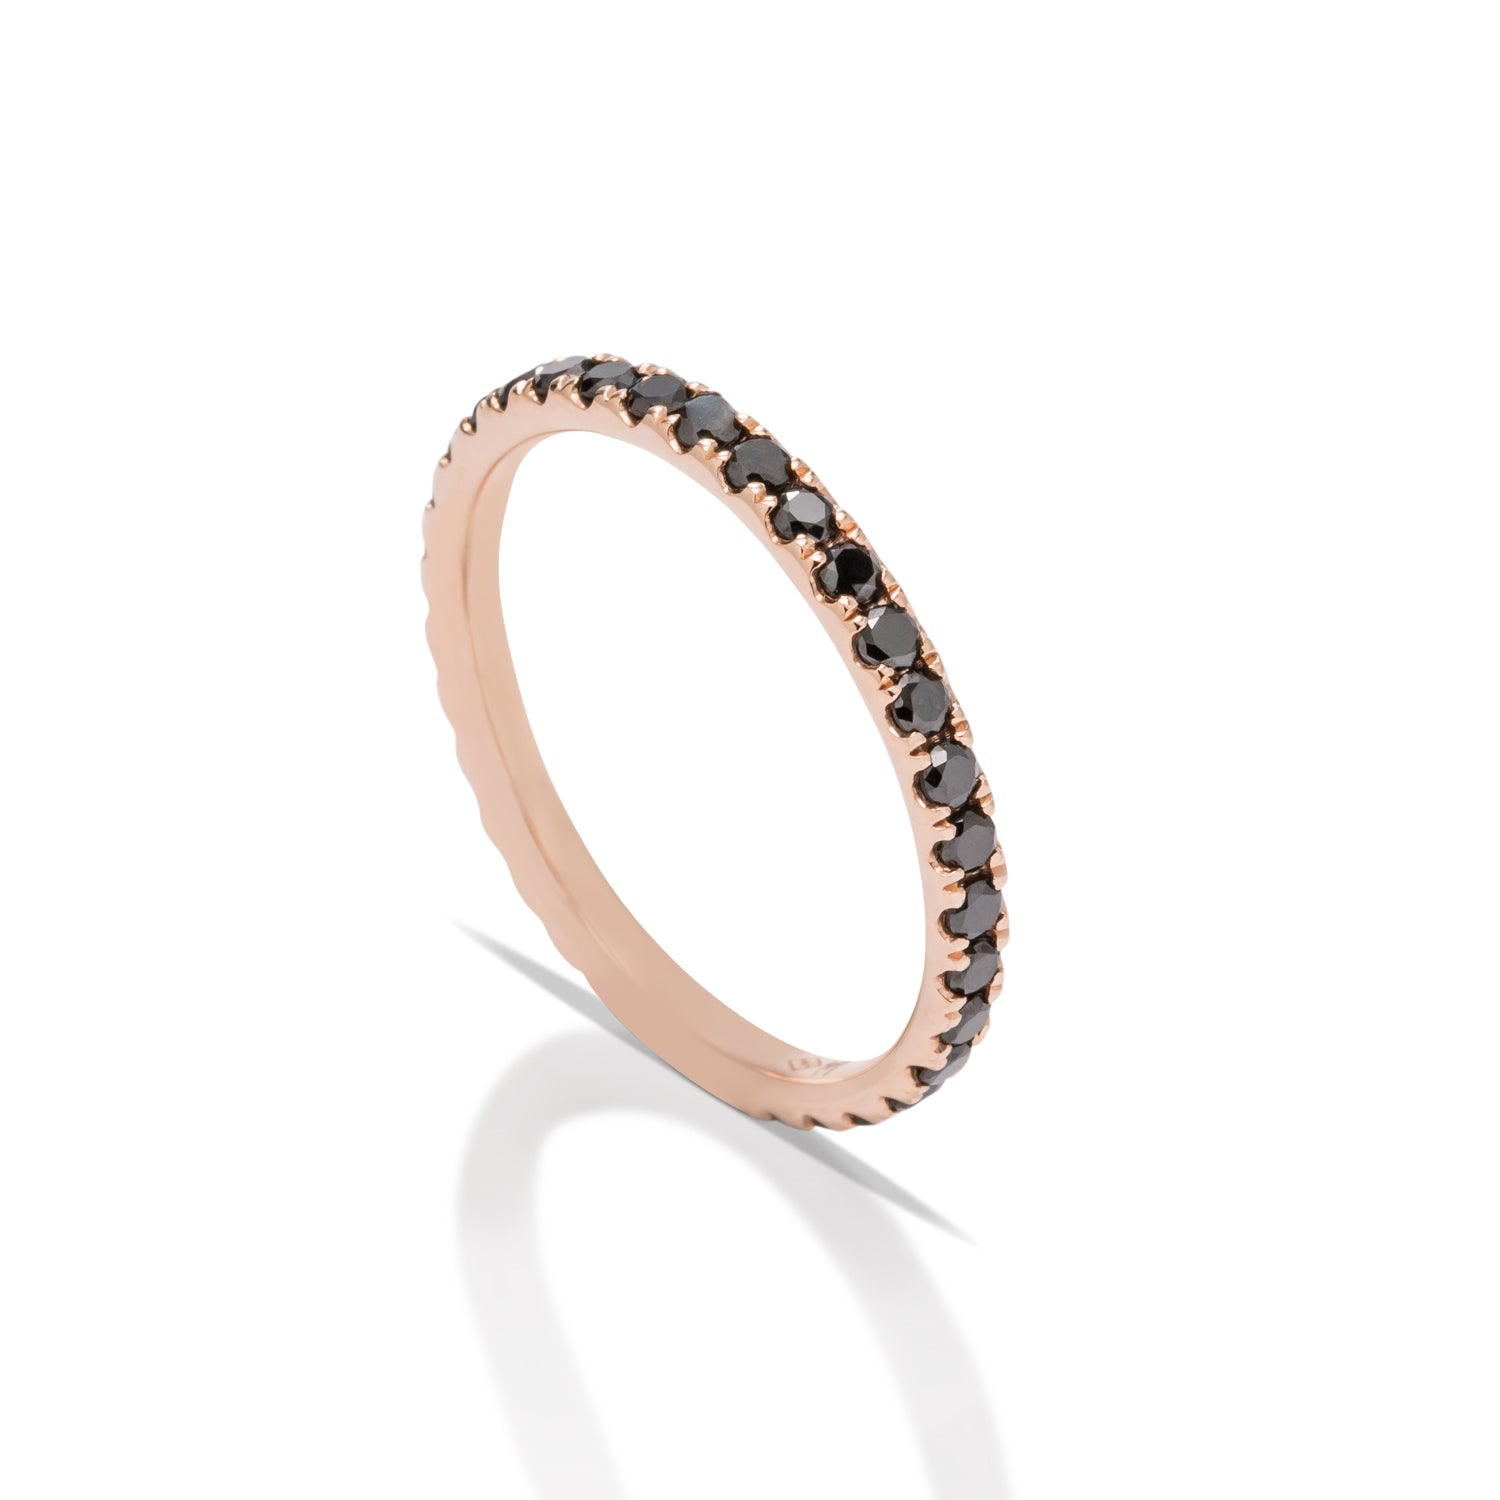 Black Diamond and Rose Gold Eternity Band - Charles Koll Jewellers